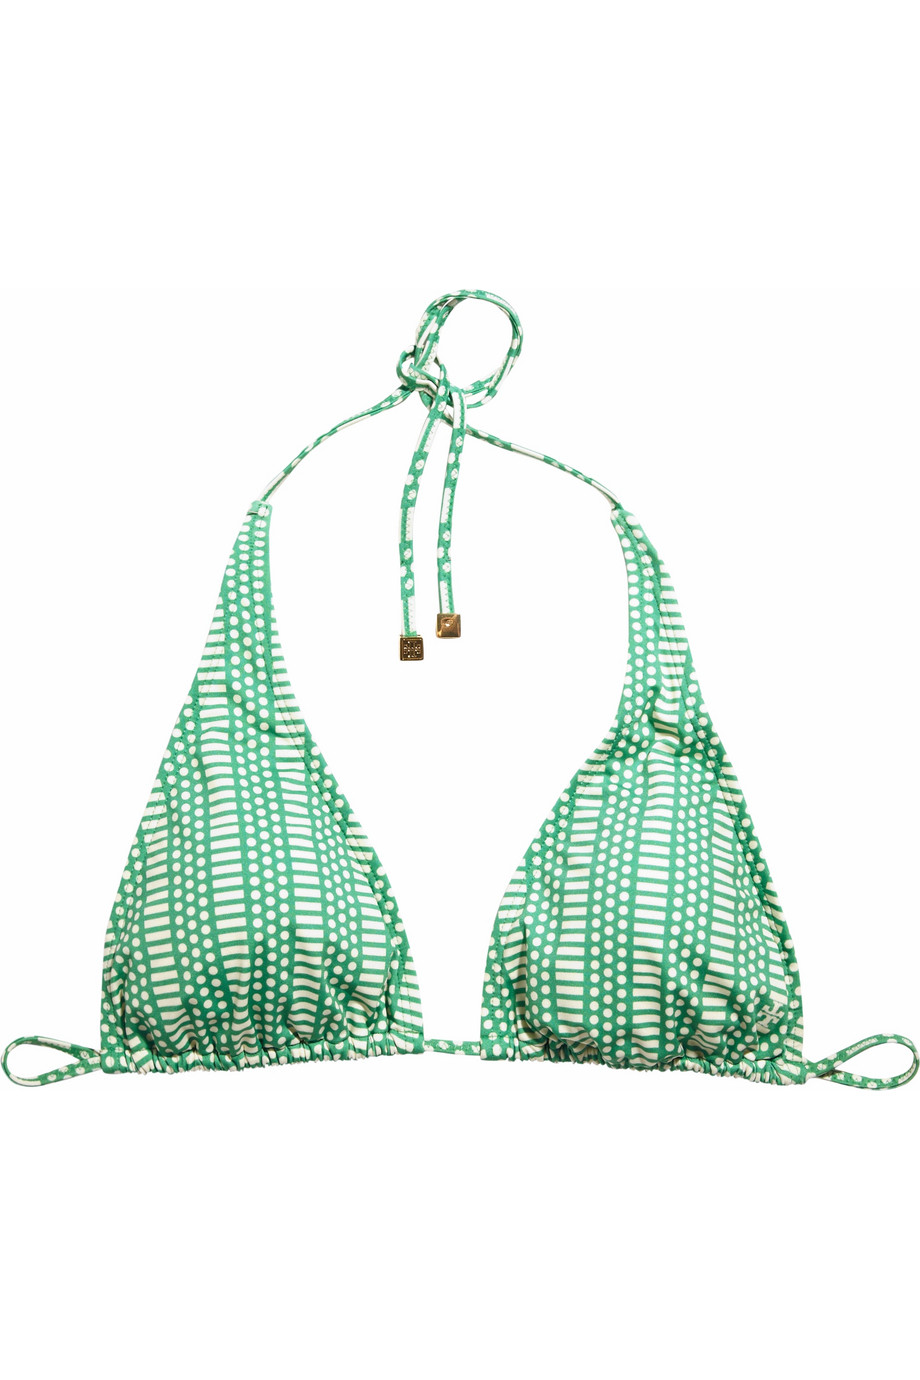 Tory burch printed triangle bikini top in green lyst for Tory burch fashion island